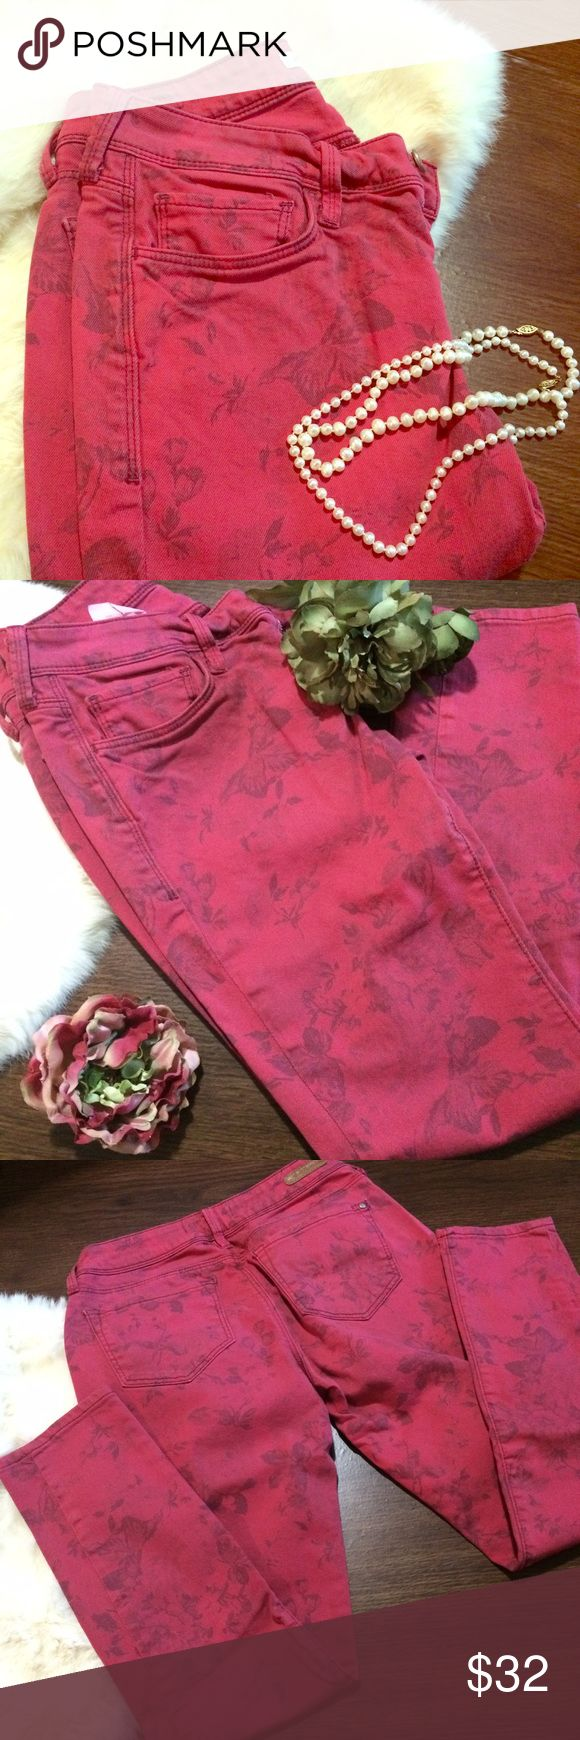 Mavi Jeans Size 27 Mavi Alexa ankle jeans in a pinkish red color with floral print. Good condition. Worn a couple times. Color did fade a bit but they still look beautiful. 🚫 No trades 🚫 No 🅿️ay🅿️al 🚫 No Ⓜ️ercari 💕ask me about bundles 💸 lowest prices up front 🎀 Mavi Jeans Skinny